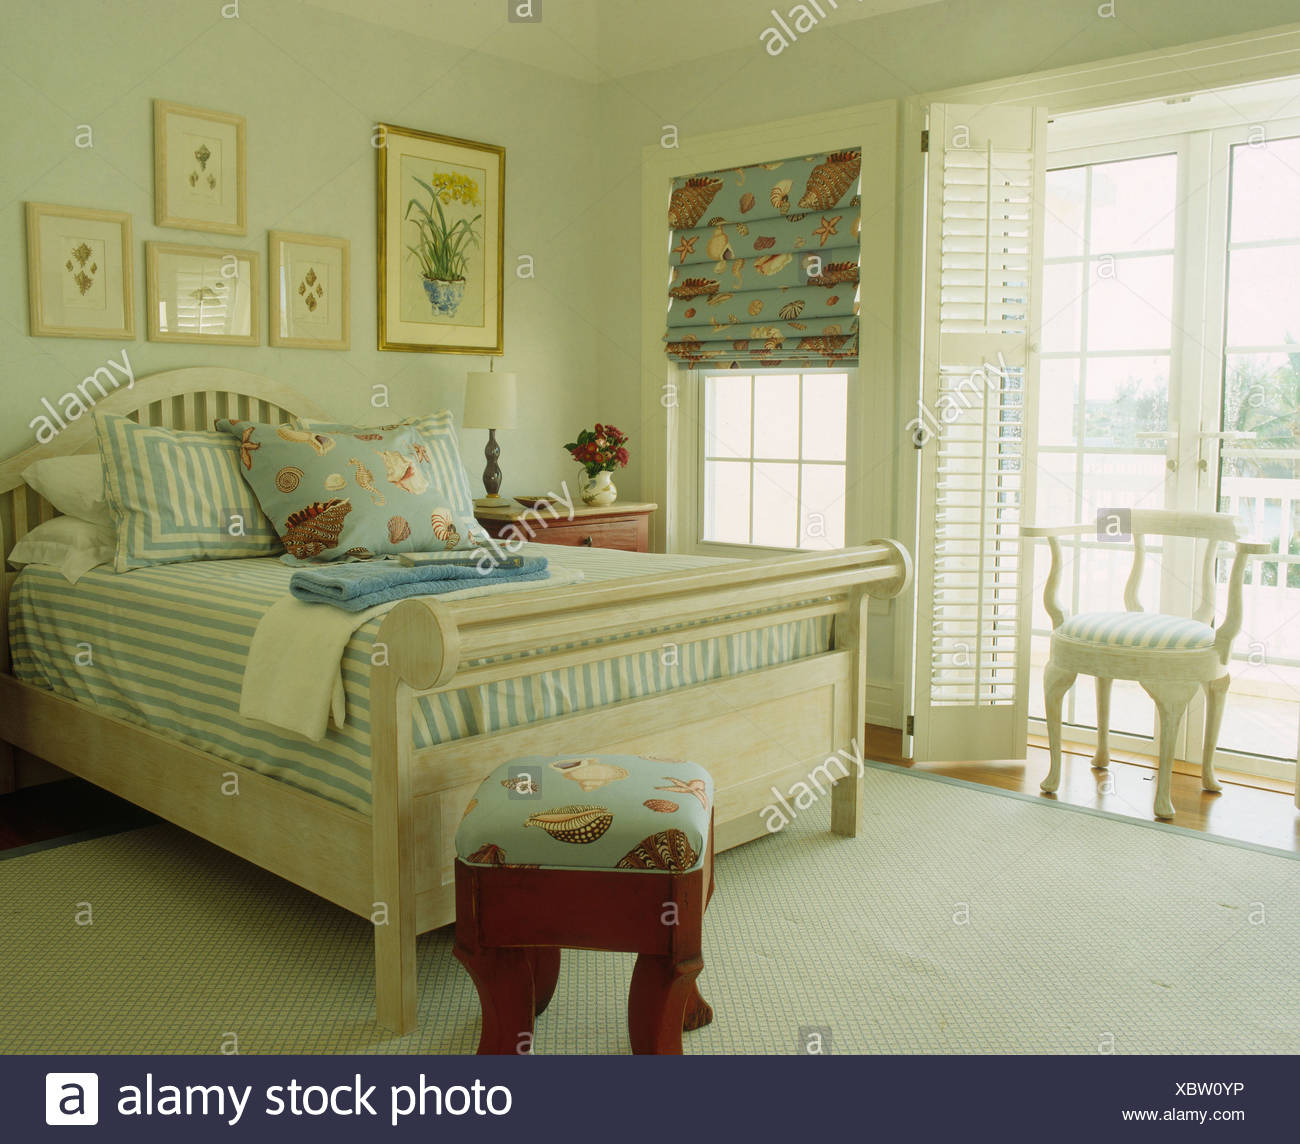 Striped Blue Cover On Pale Wood Bed In Bermudan Bedroom Plantation Shutters  On French Doors